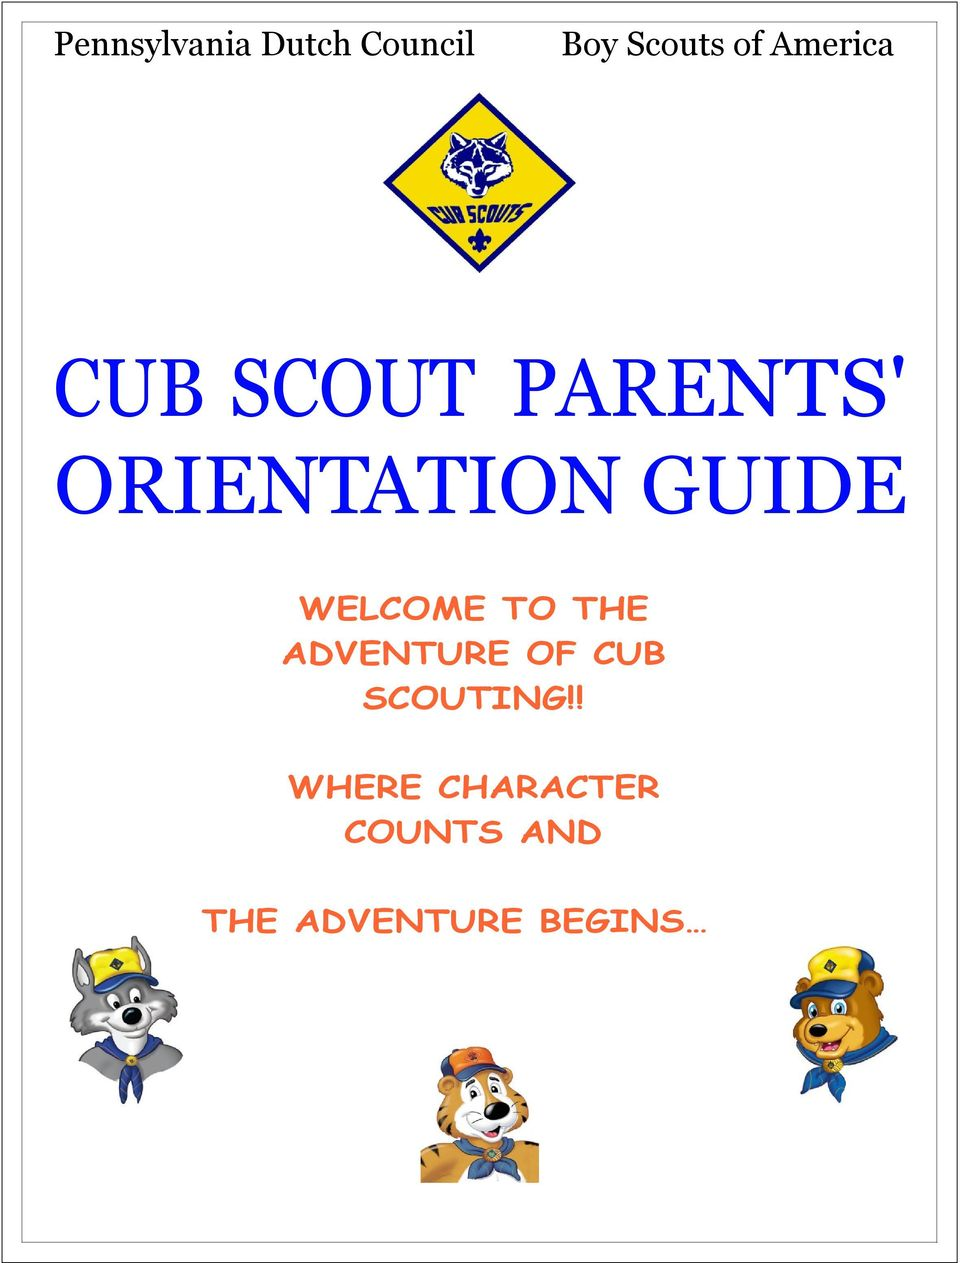 GUIDE WELCOME TO THE ADVENTURE OF CUB